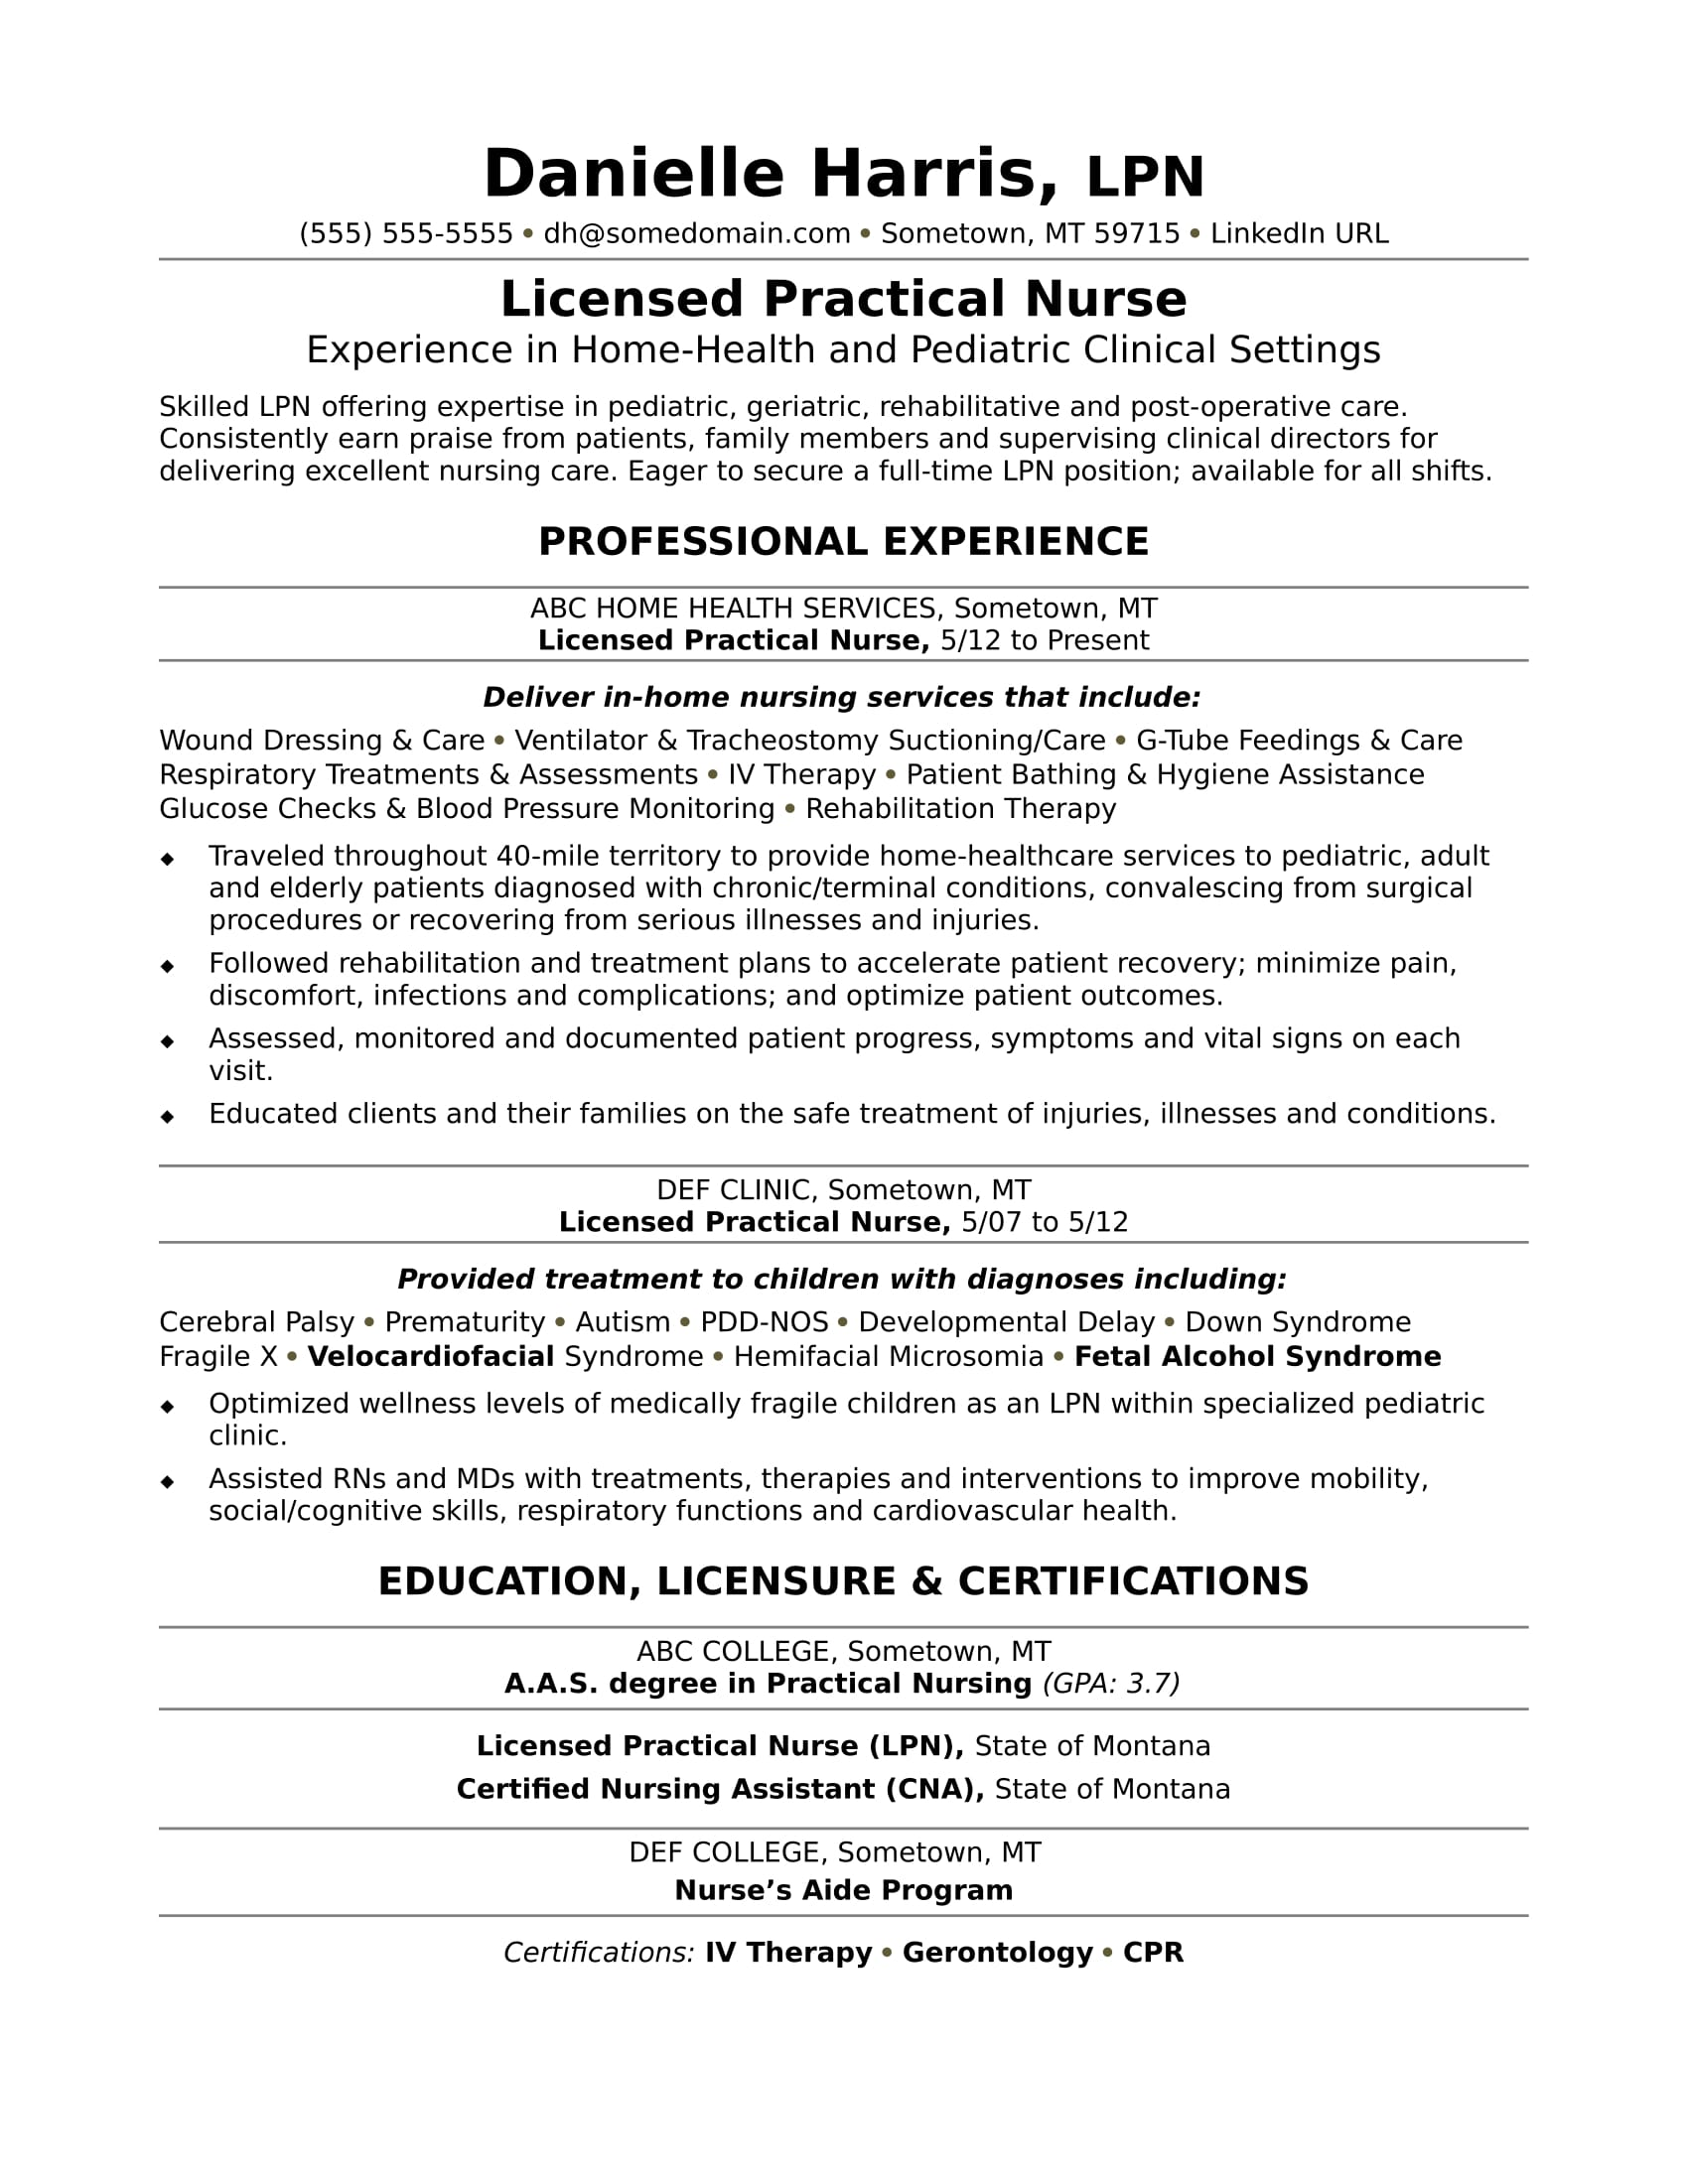 Licensed Practical Nurse Resume Sample  Great Resume Layouts